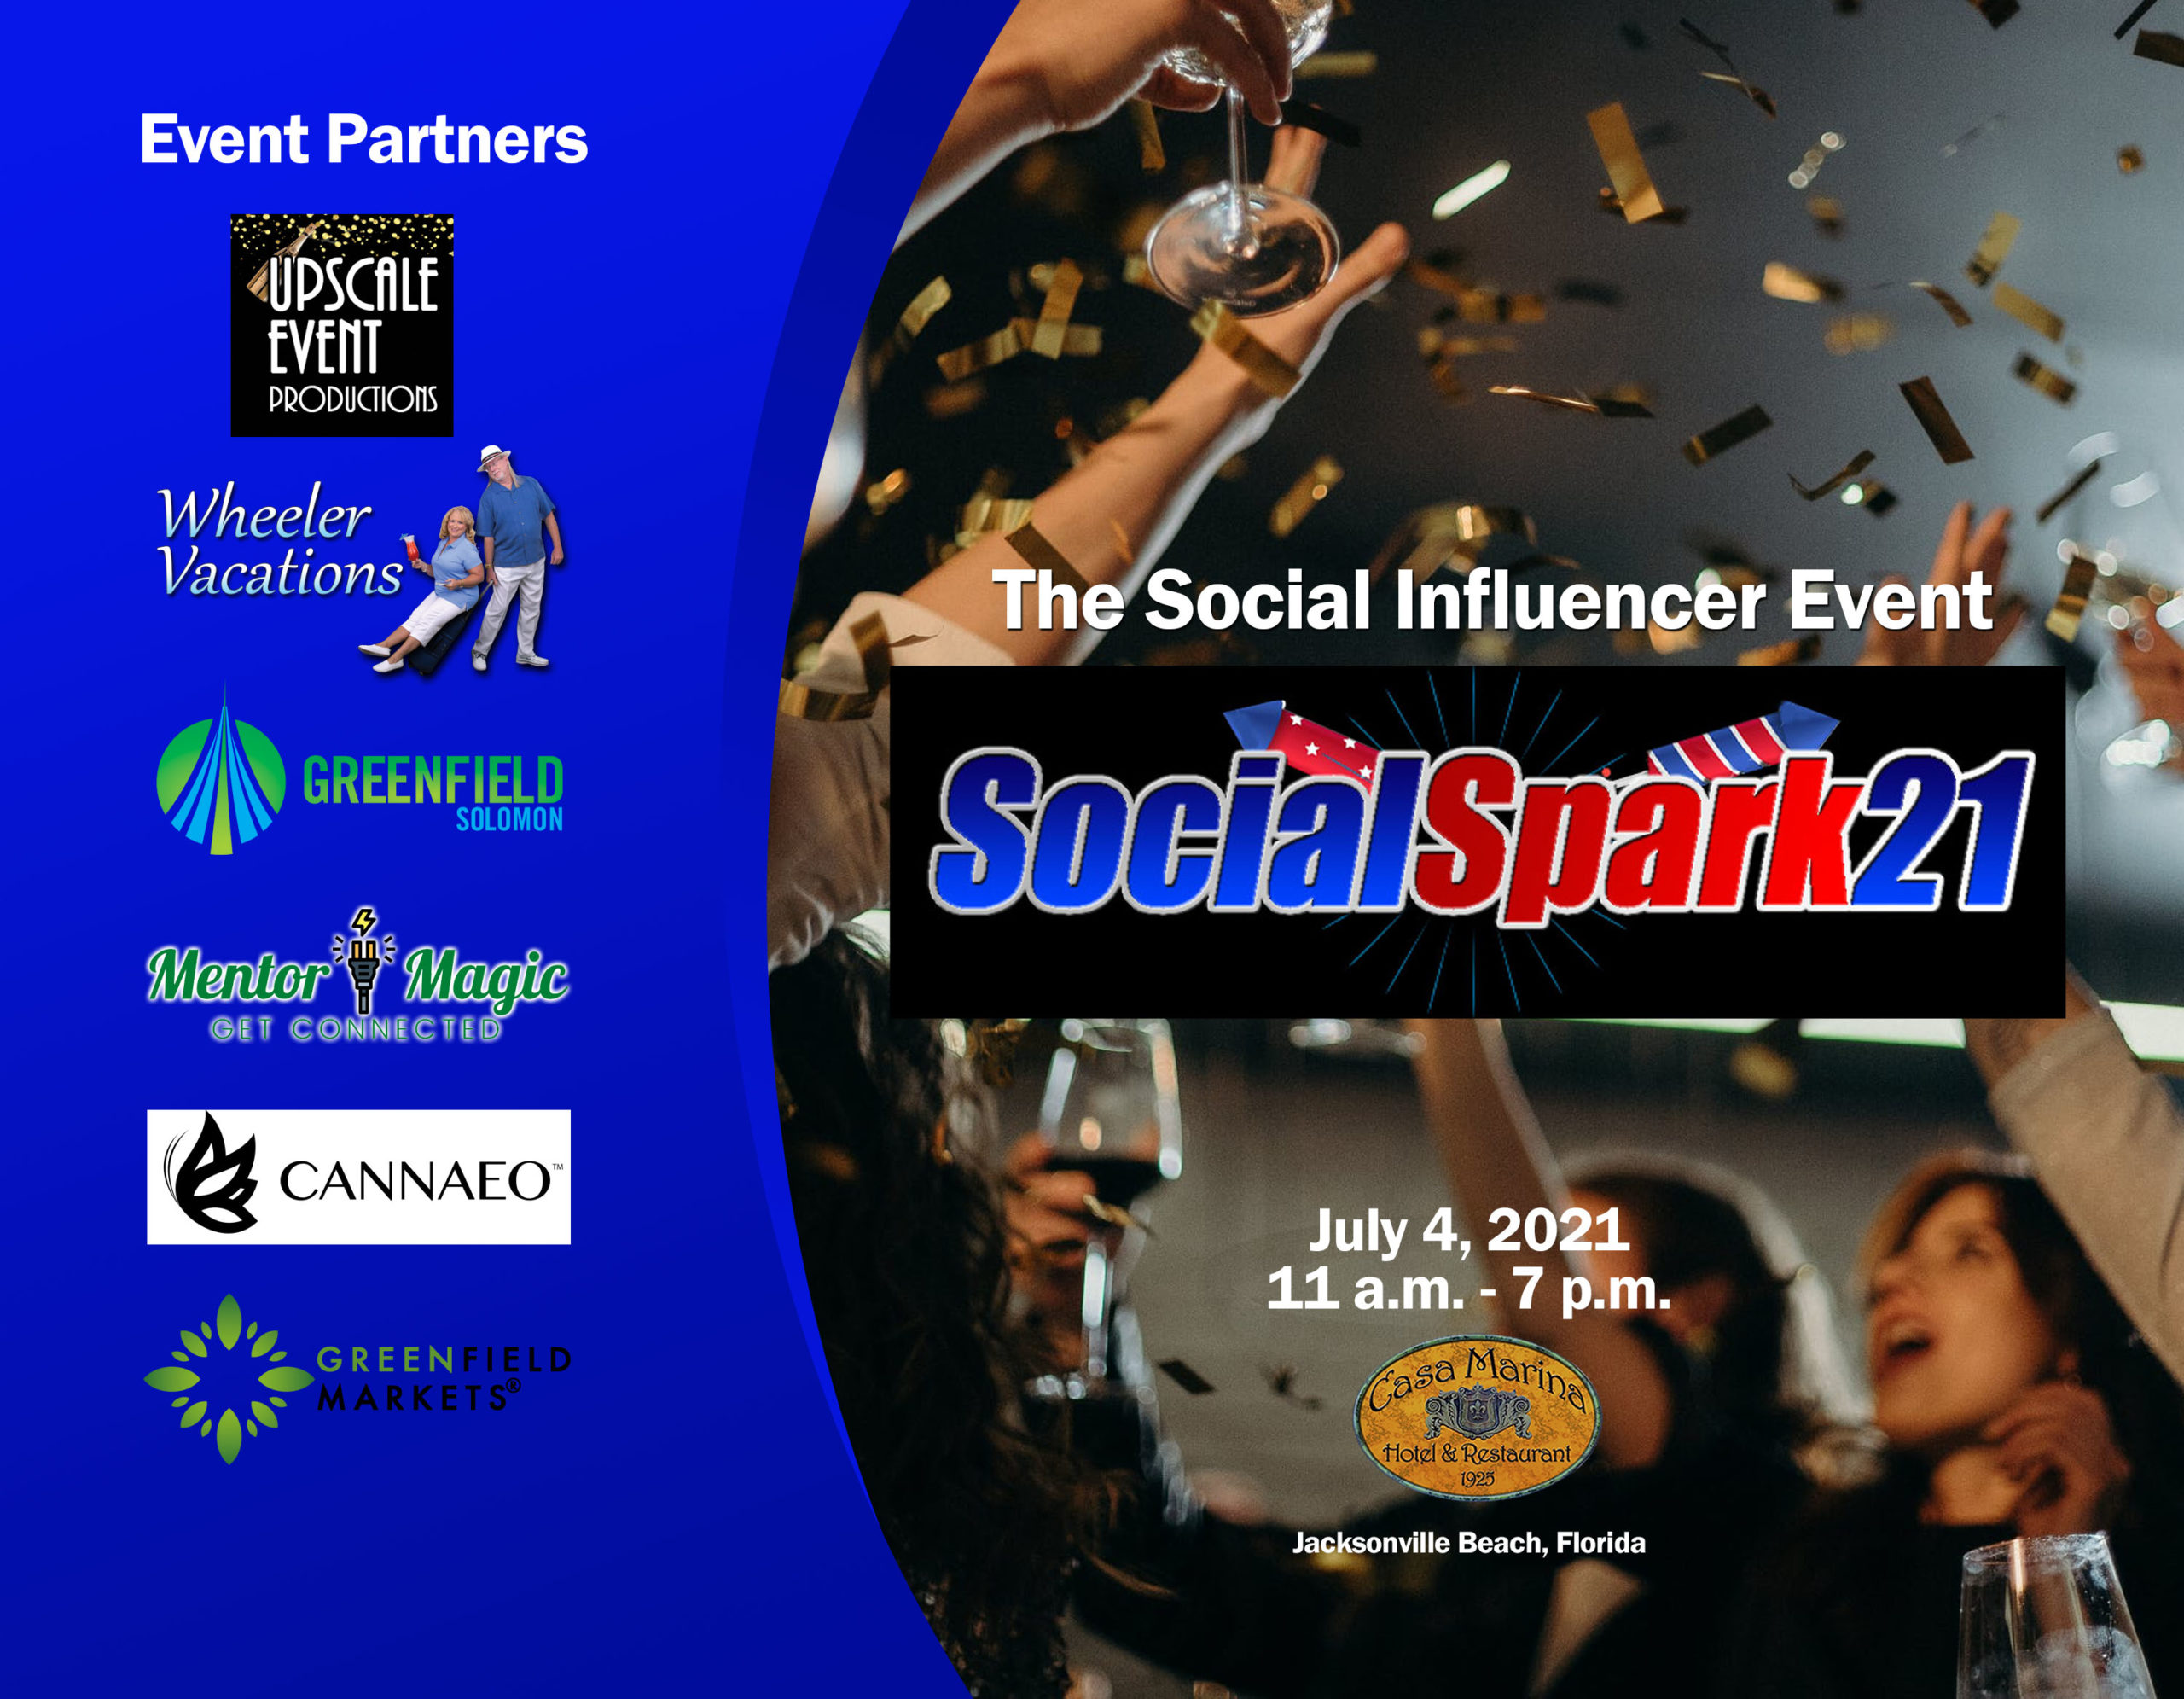 SocialSpark21 Title slide with Event Partners